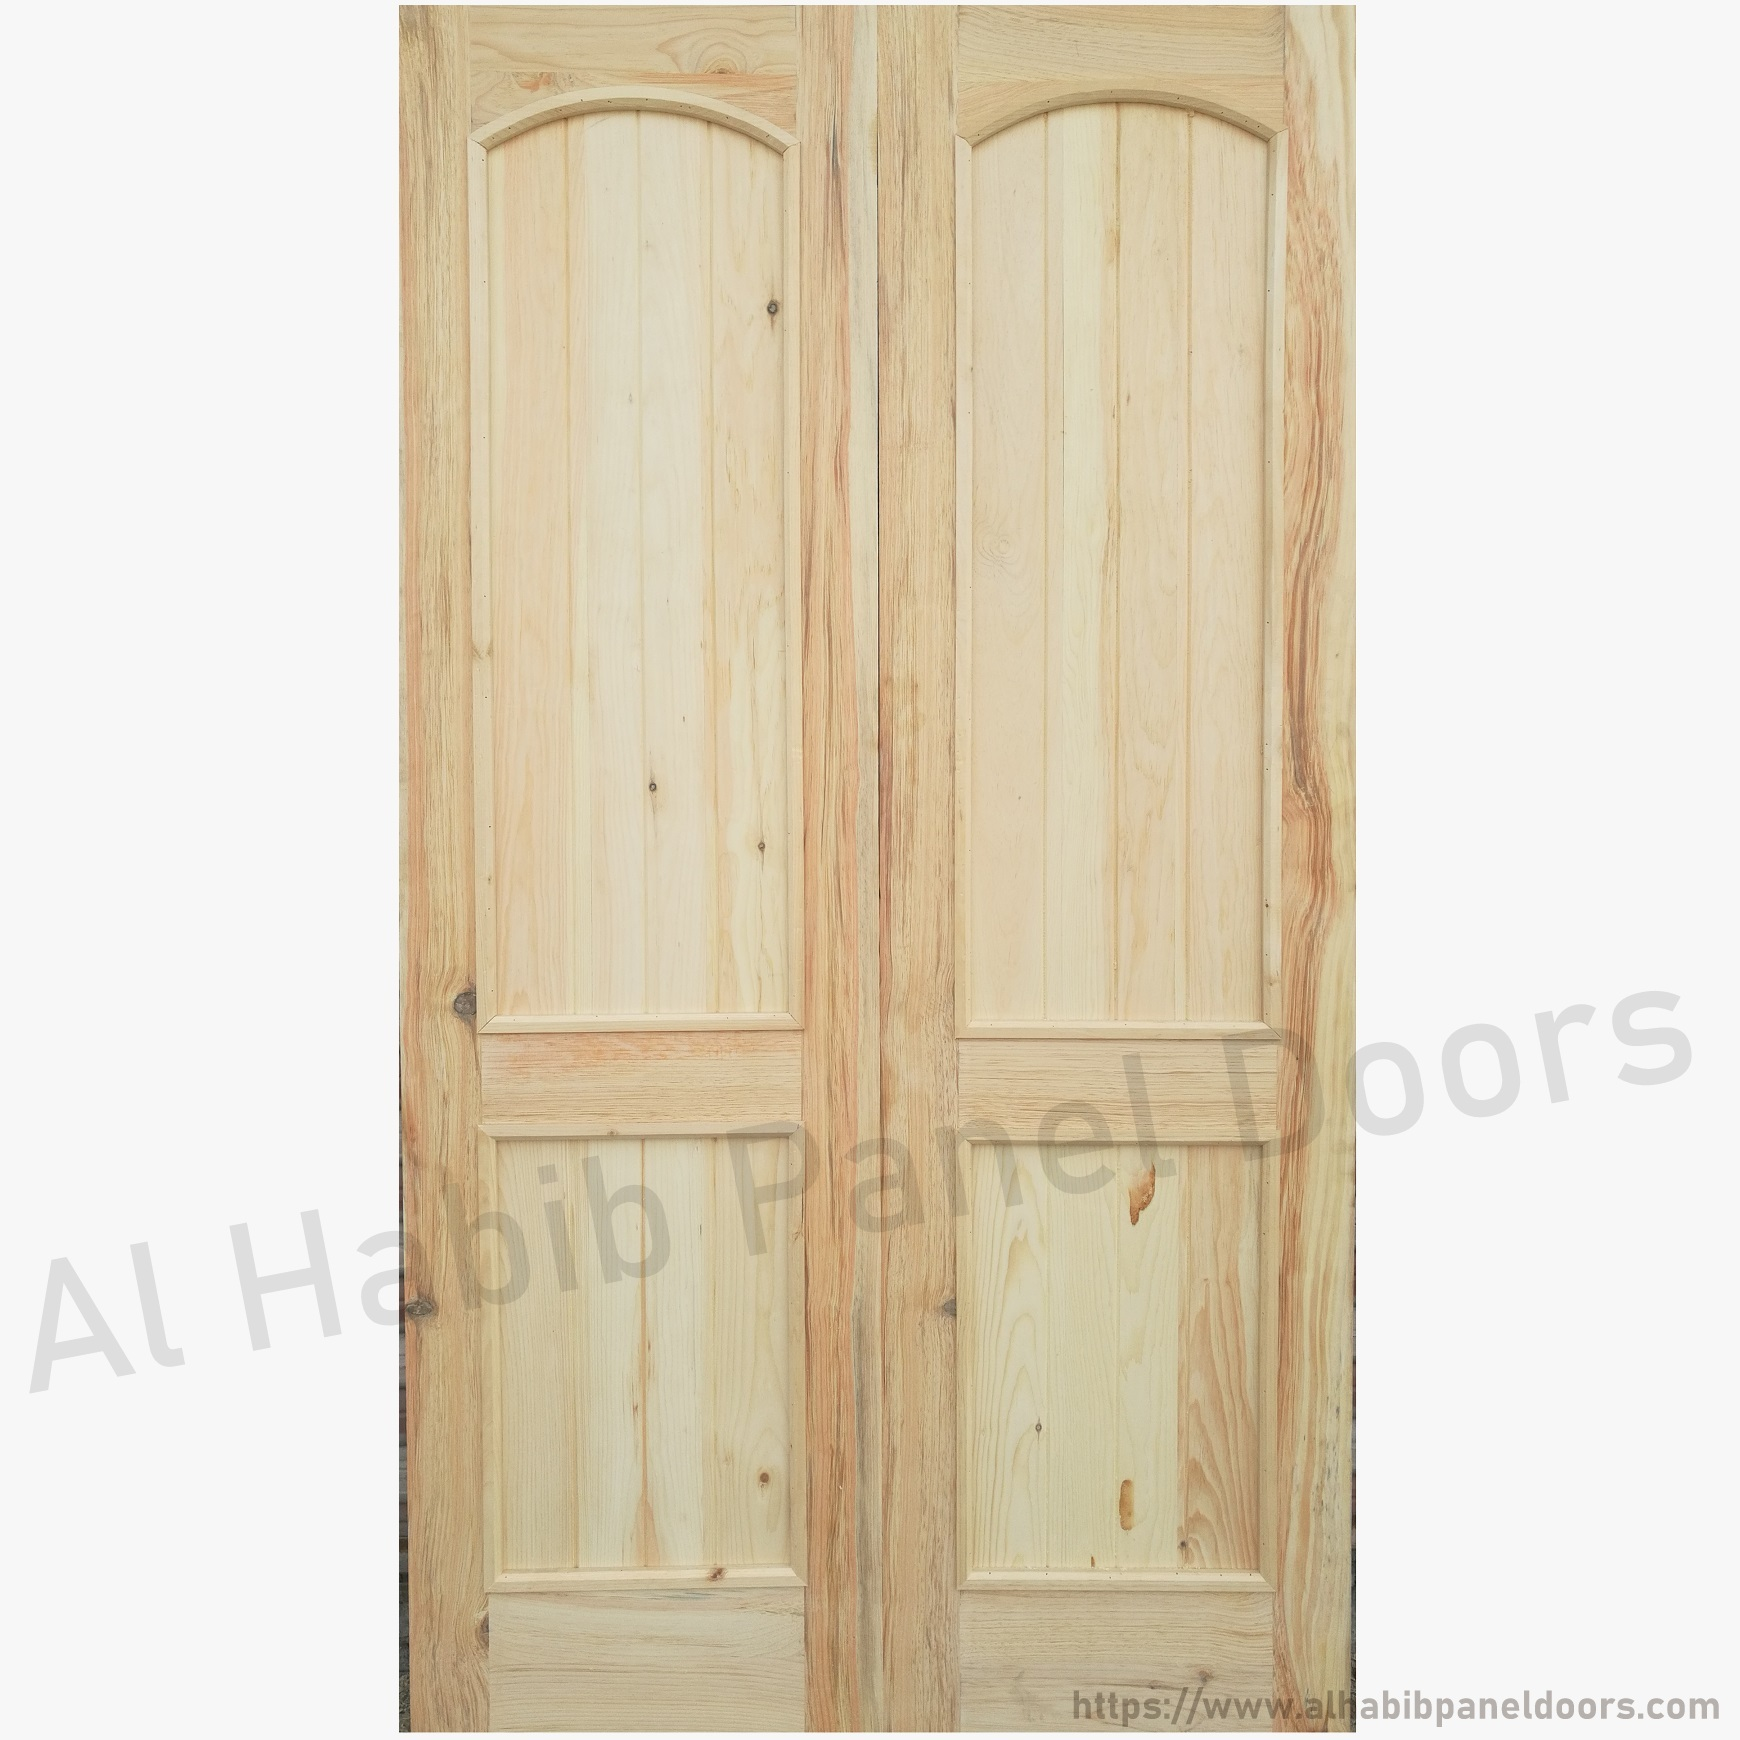 Main doors doors al habib panel doors for Door design accessories